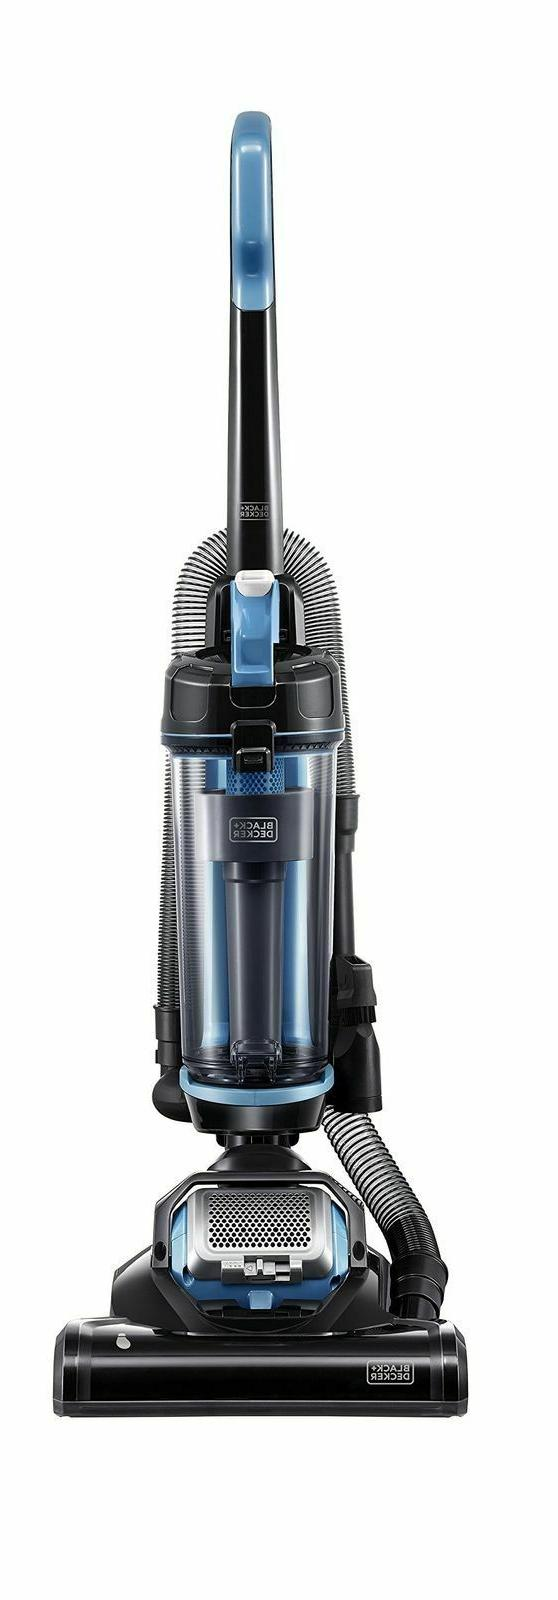 Vacuum Cleaner Vacume Upright Easy Commercial Hotel Floor